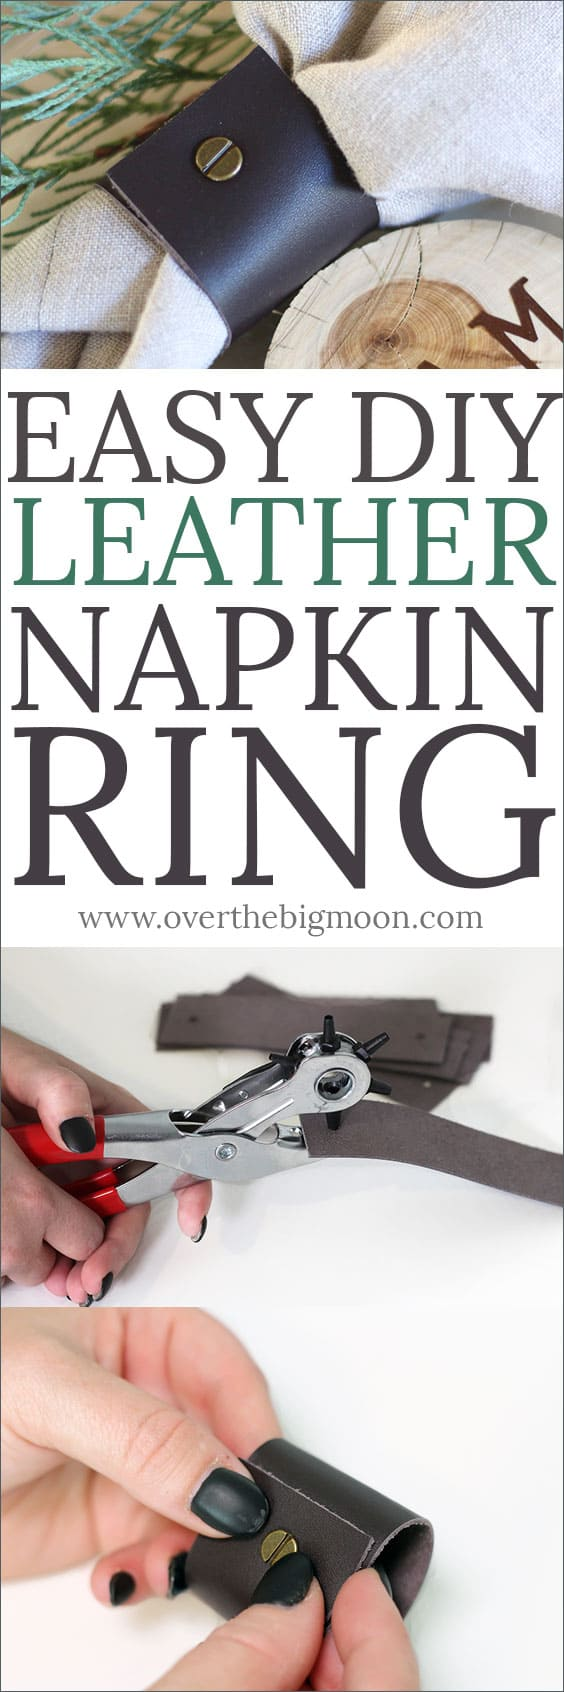 Easy DIY Leather Napkin Ring tutorial with step by step instructions! From www.overthebigmoon.com!